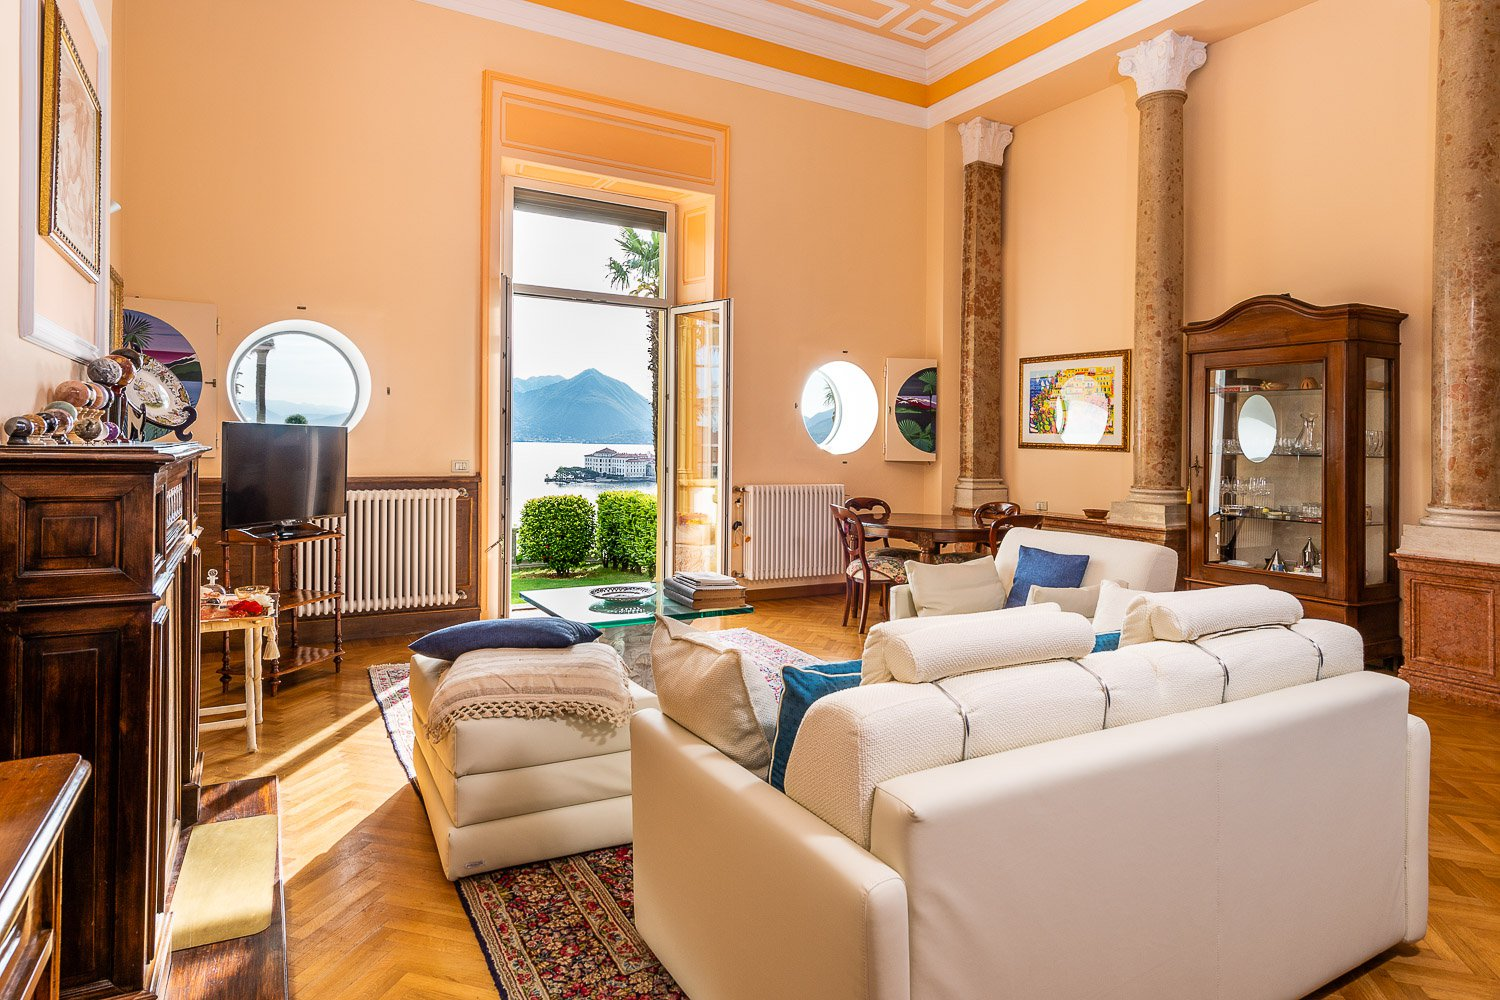 Apartment for sale in historic villa in Baveno - sitting room